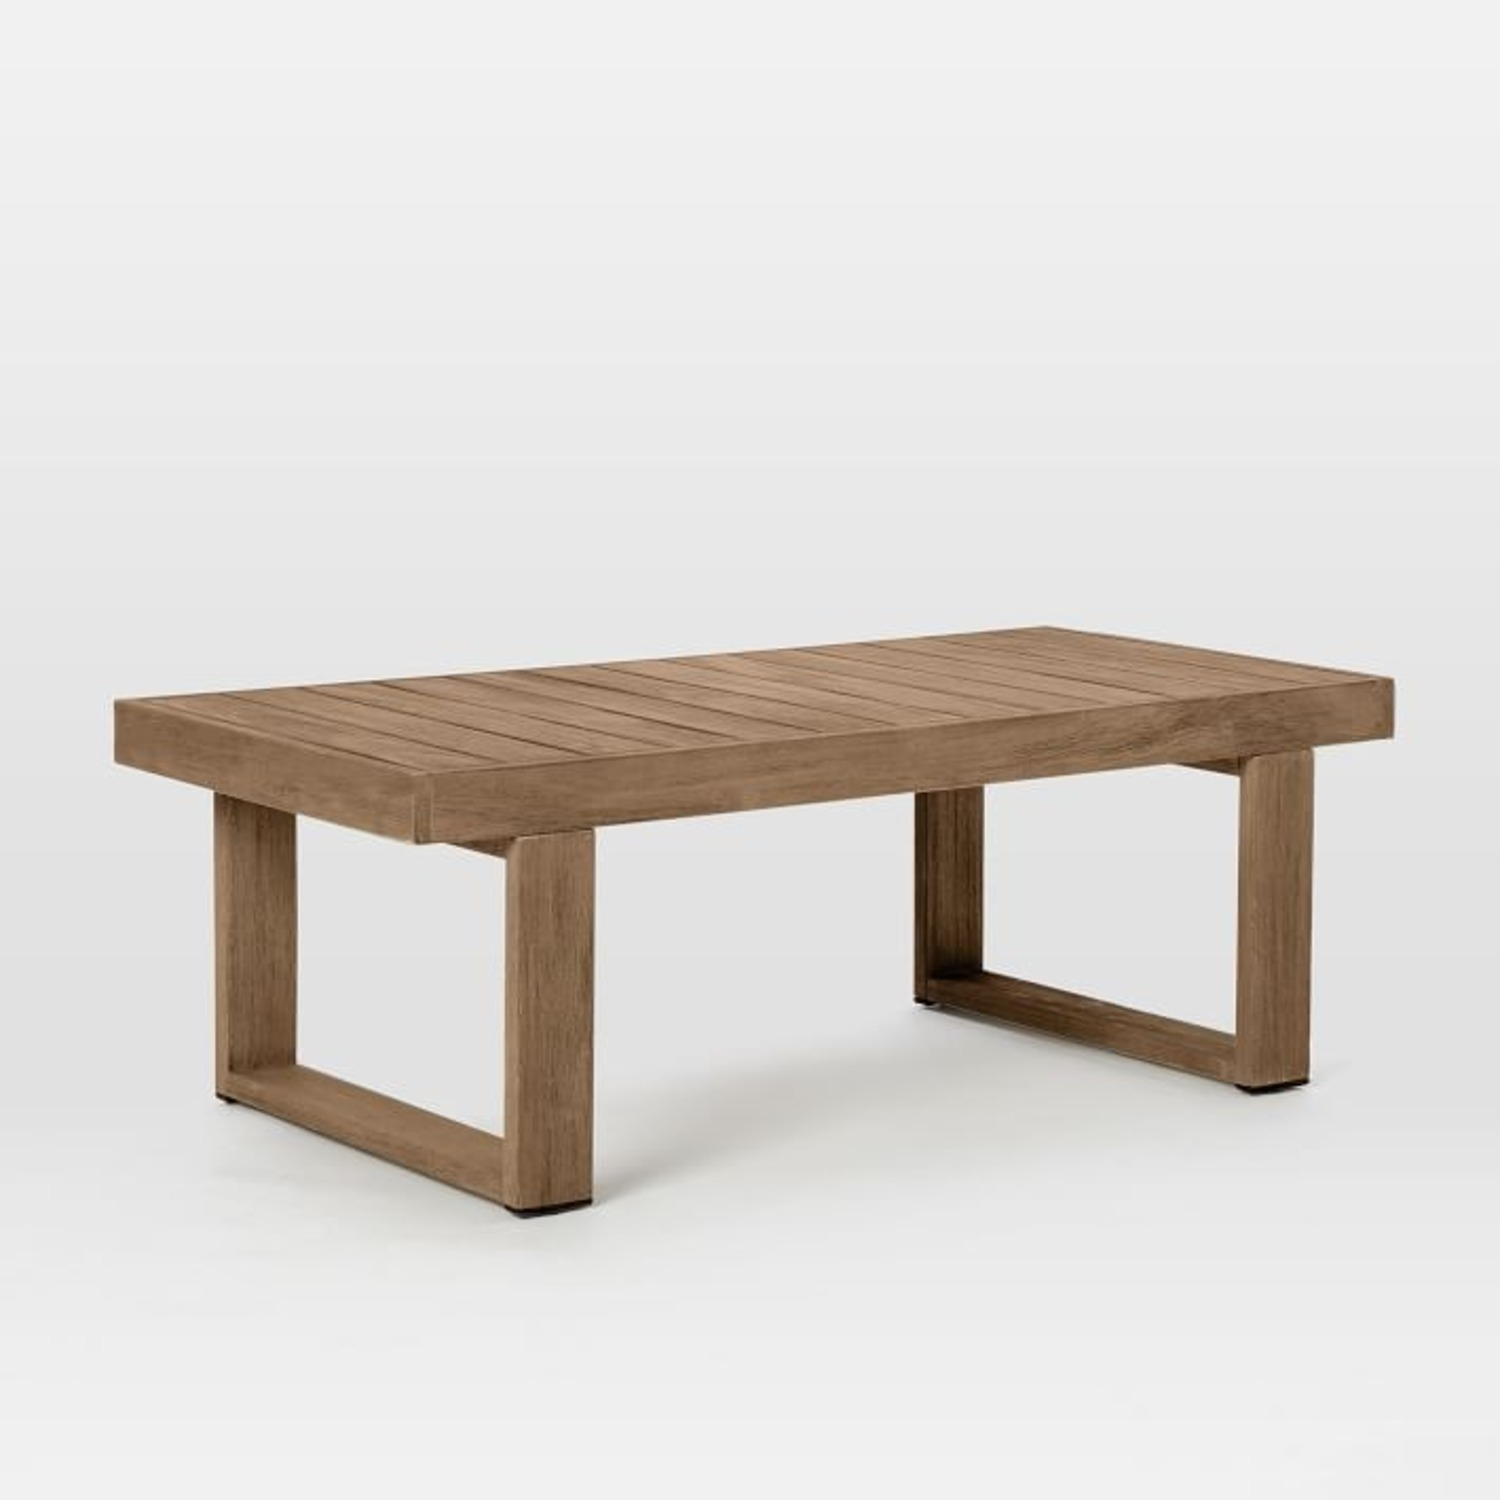 West Elm Portside Outdoor Coffee Table , Driftwood - image-1